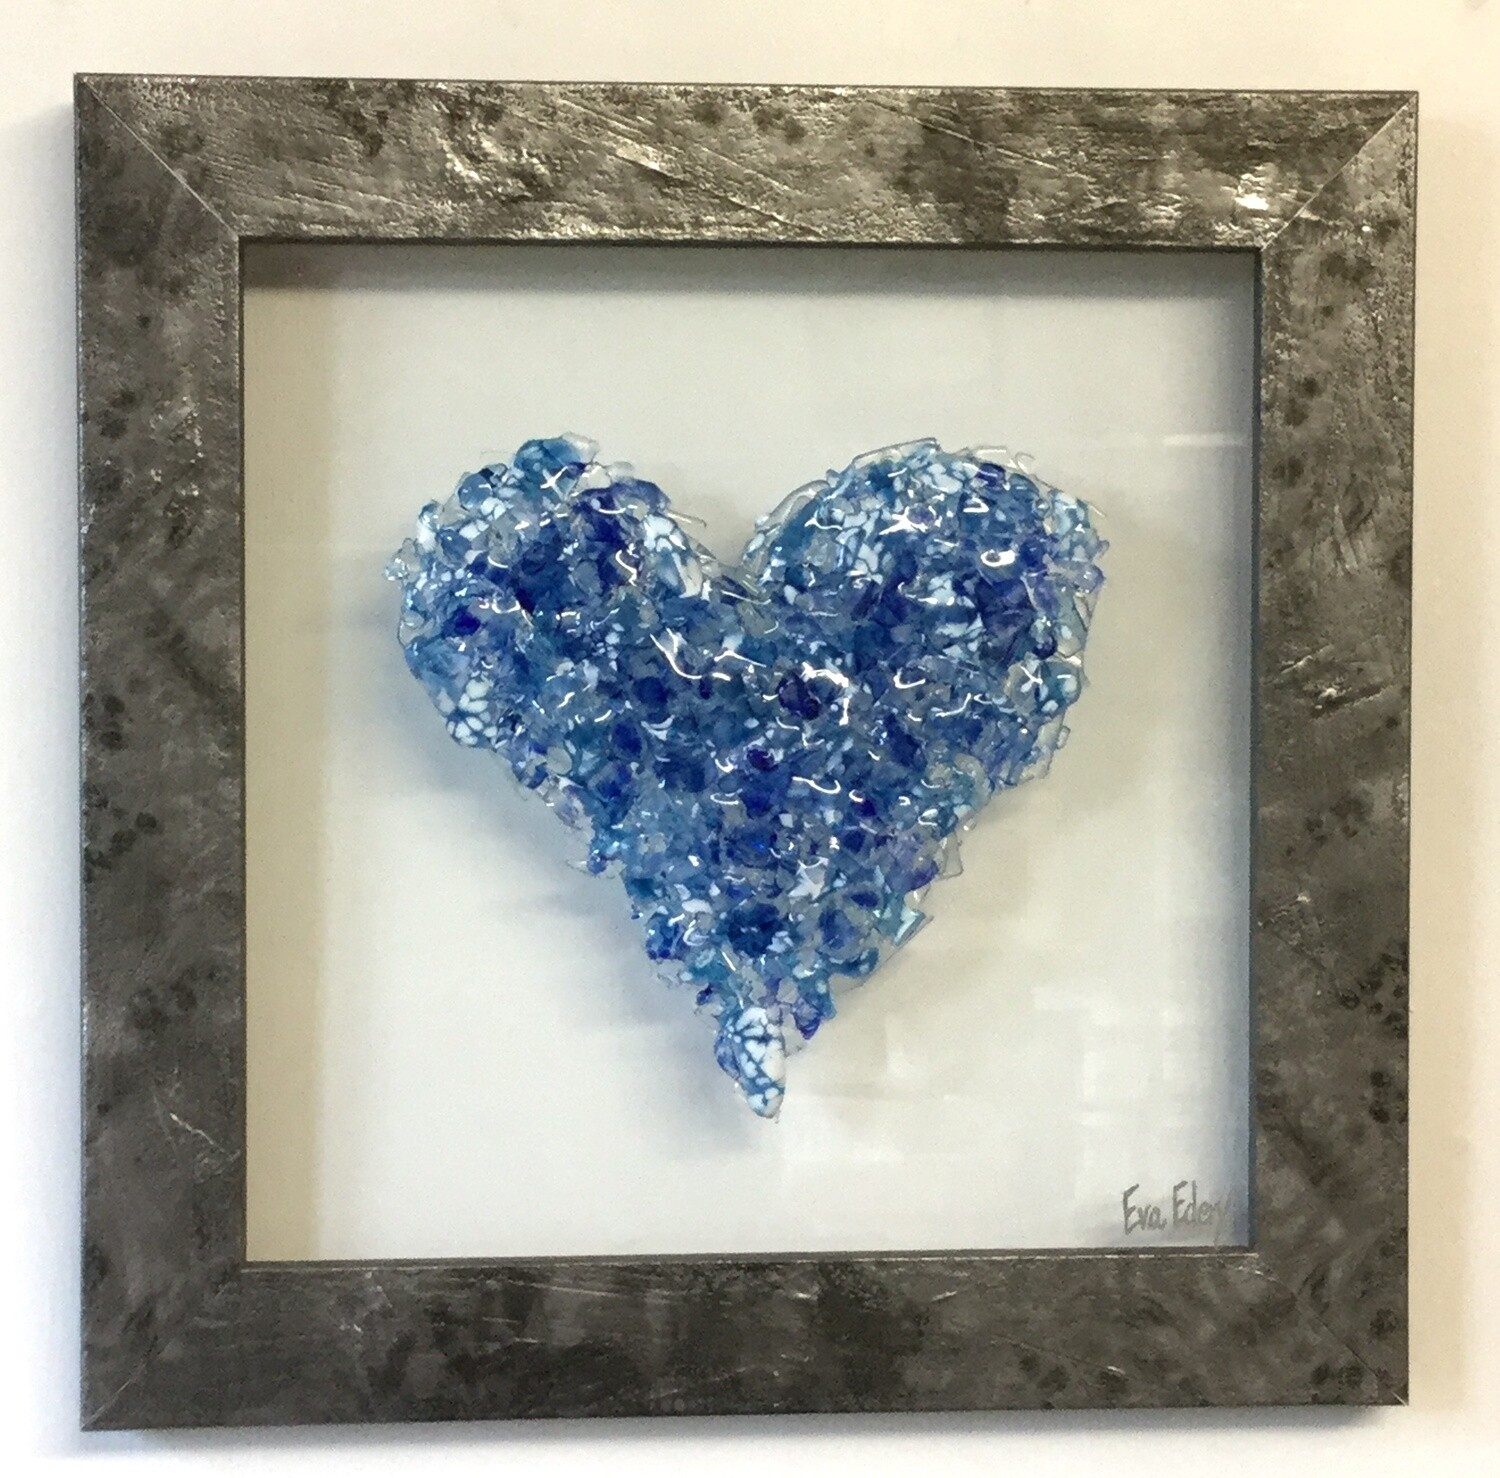 Heart Beat in Blue Hues